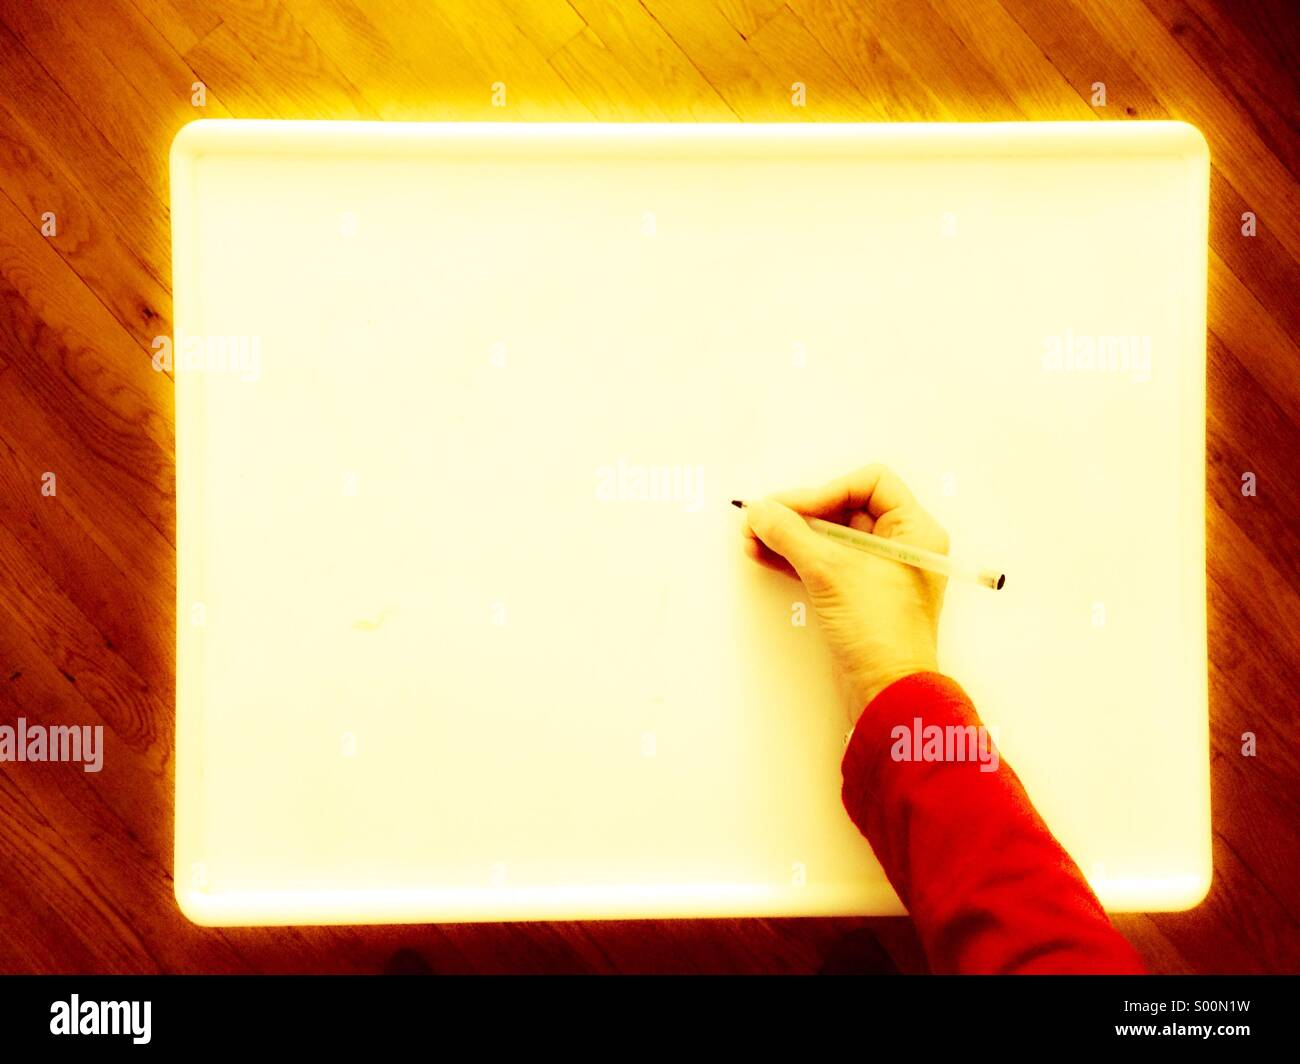 Hand holding pen to write on blank white sign, seen from above - Stock Image